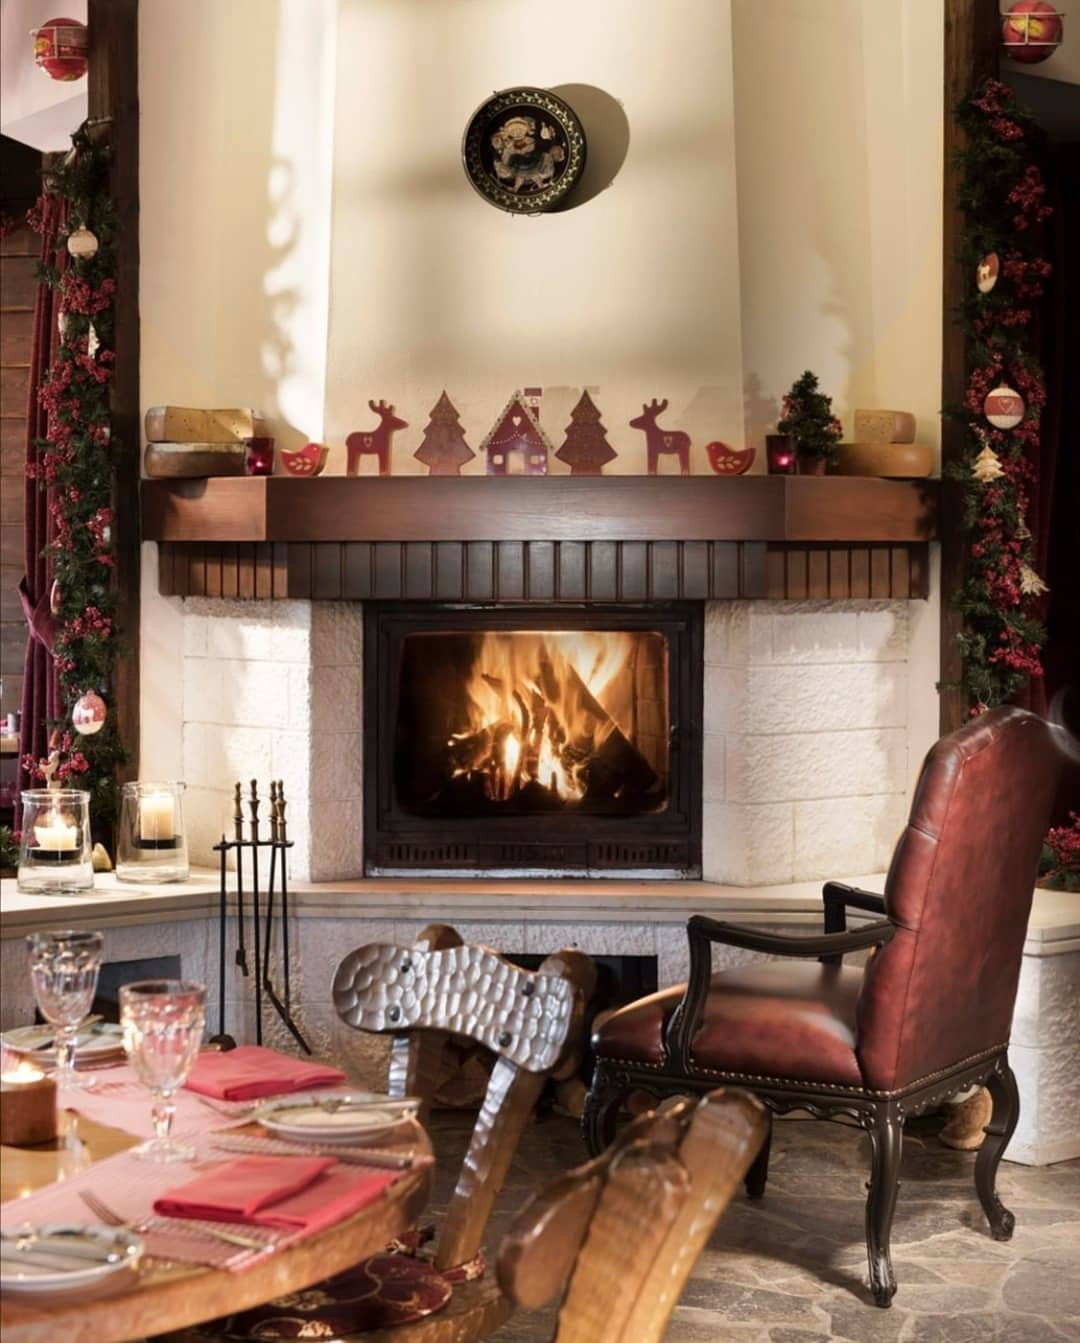 Fireplace Decorations for Christmas Home Decor (9)